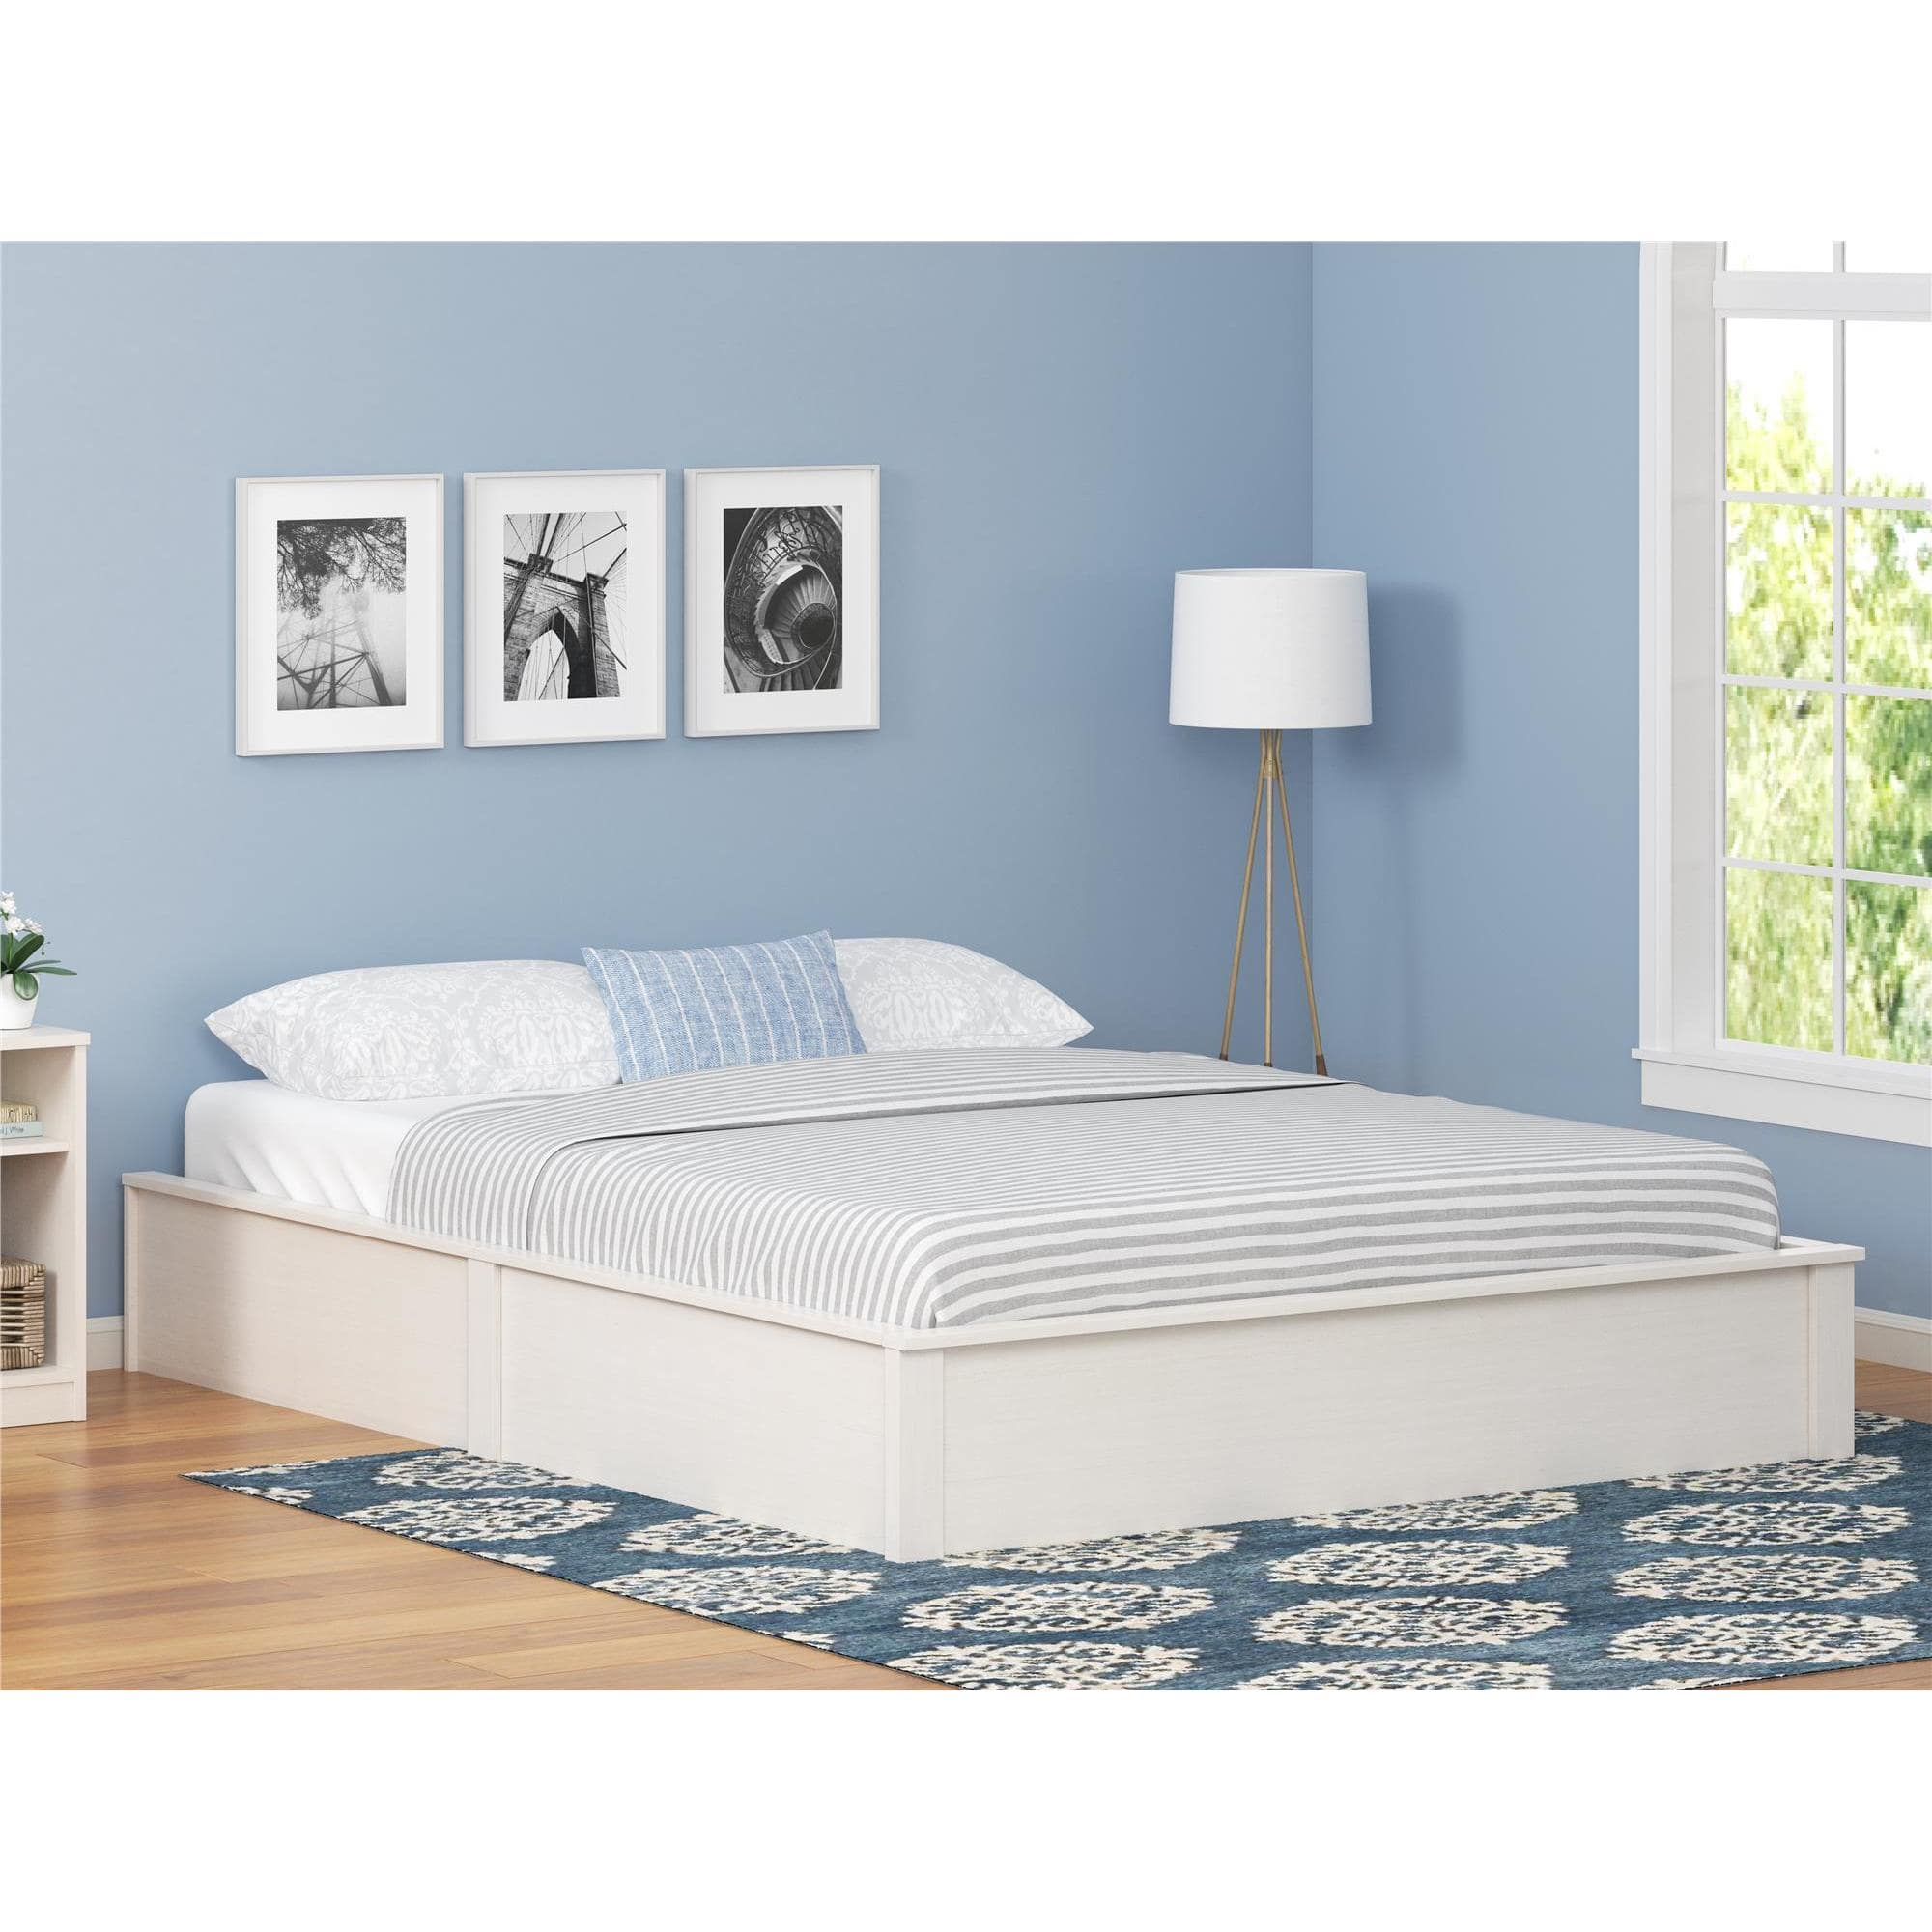 Ameriwood Home Platform Bed Frame, Multiple Colors and Sizes